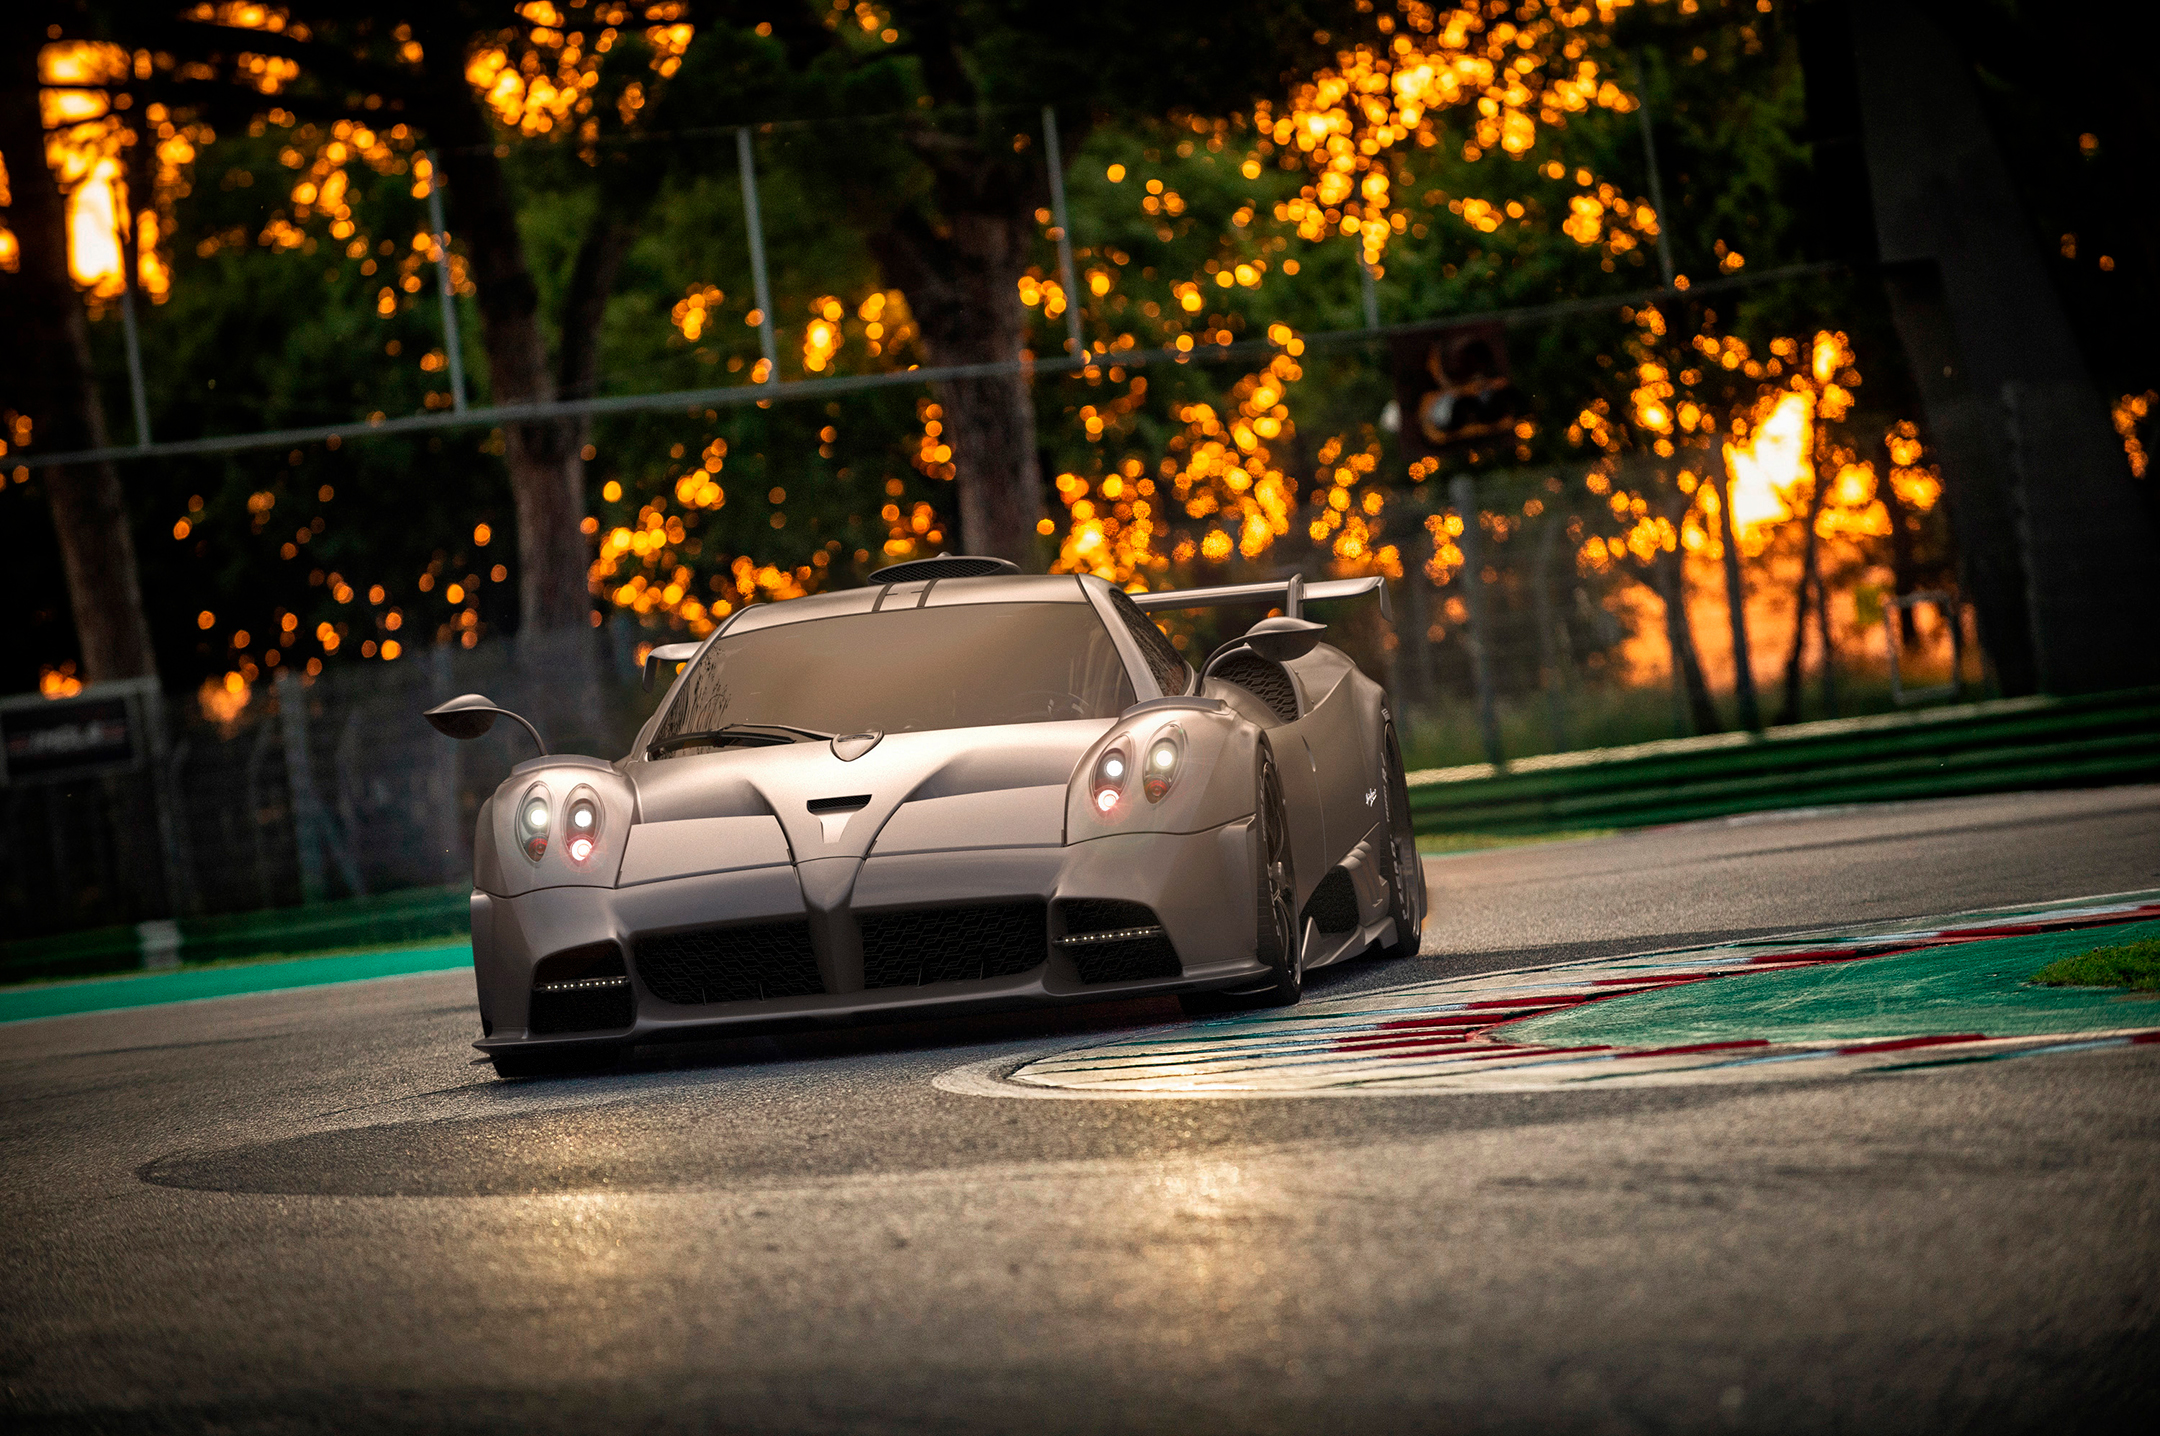 Pagani Imola - 2020 - front-face / face avant - on track / sur circuit / in pista